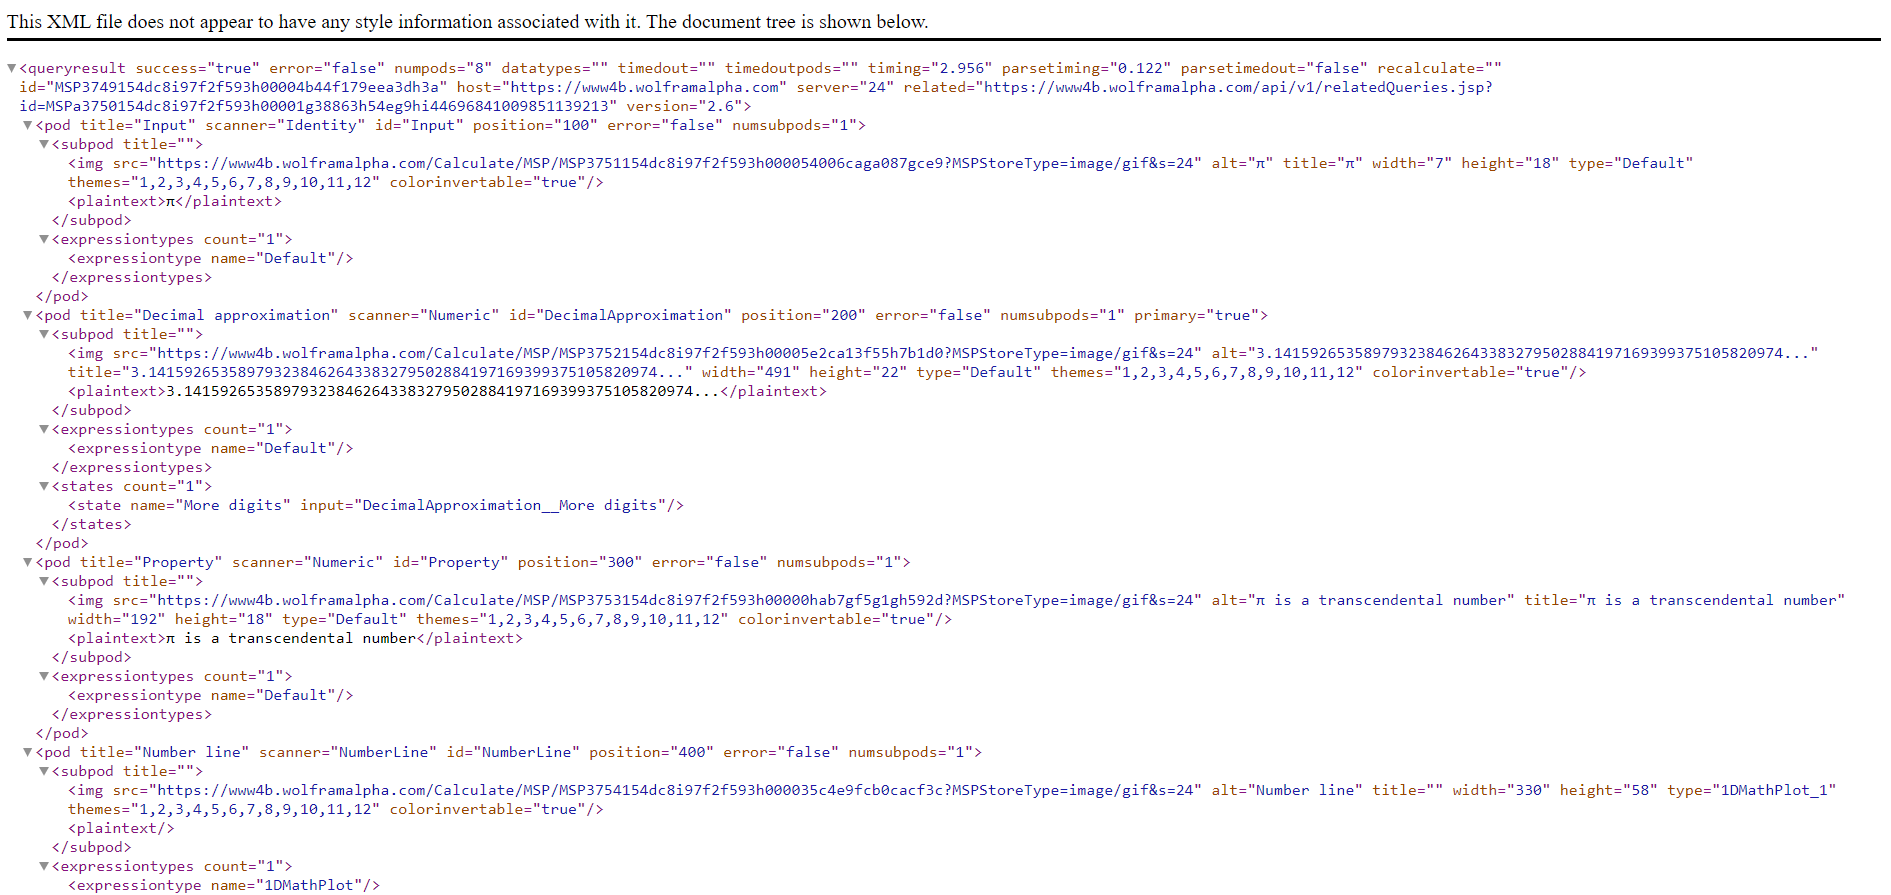 XML Response woth no styling information